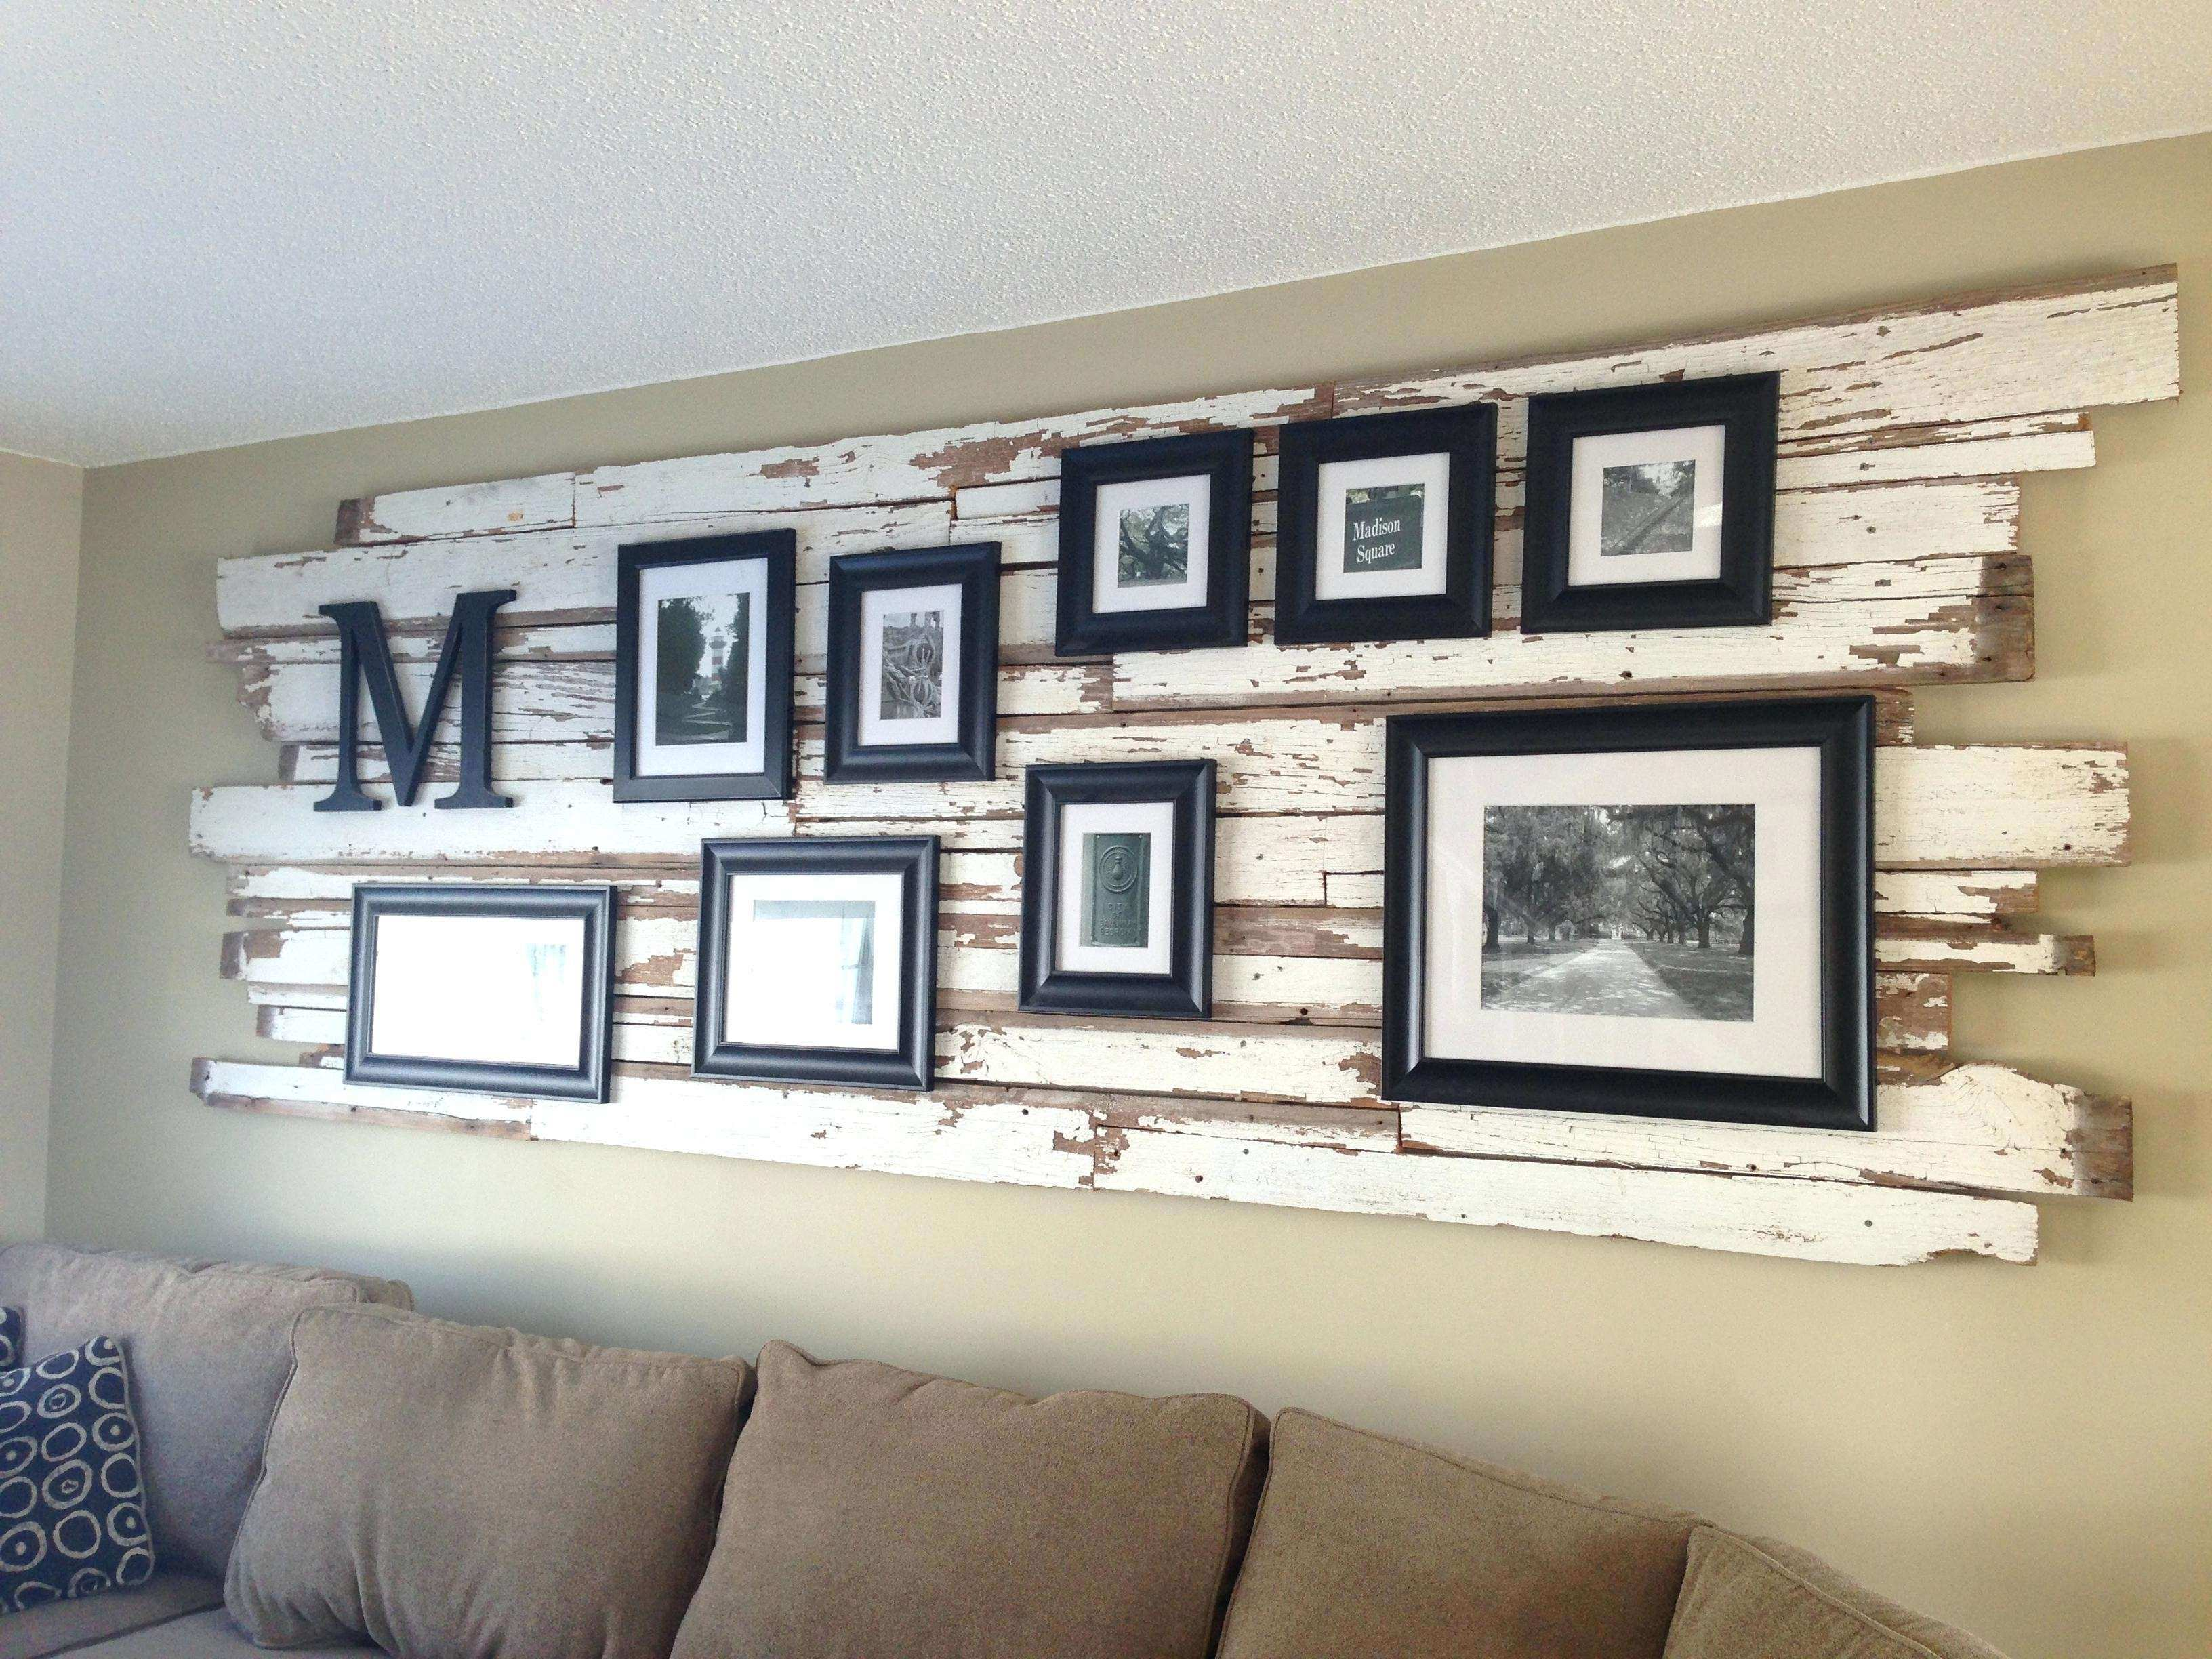 Wall Picture Ideas Tumblr Collage For Living Room – homeenergyagents